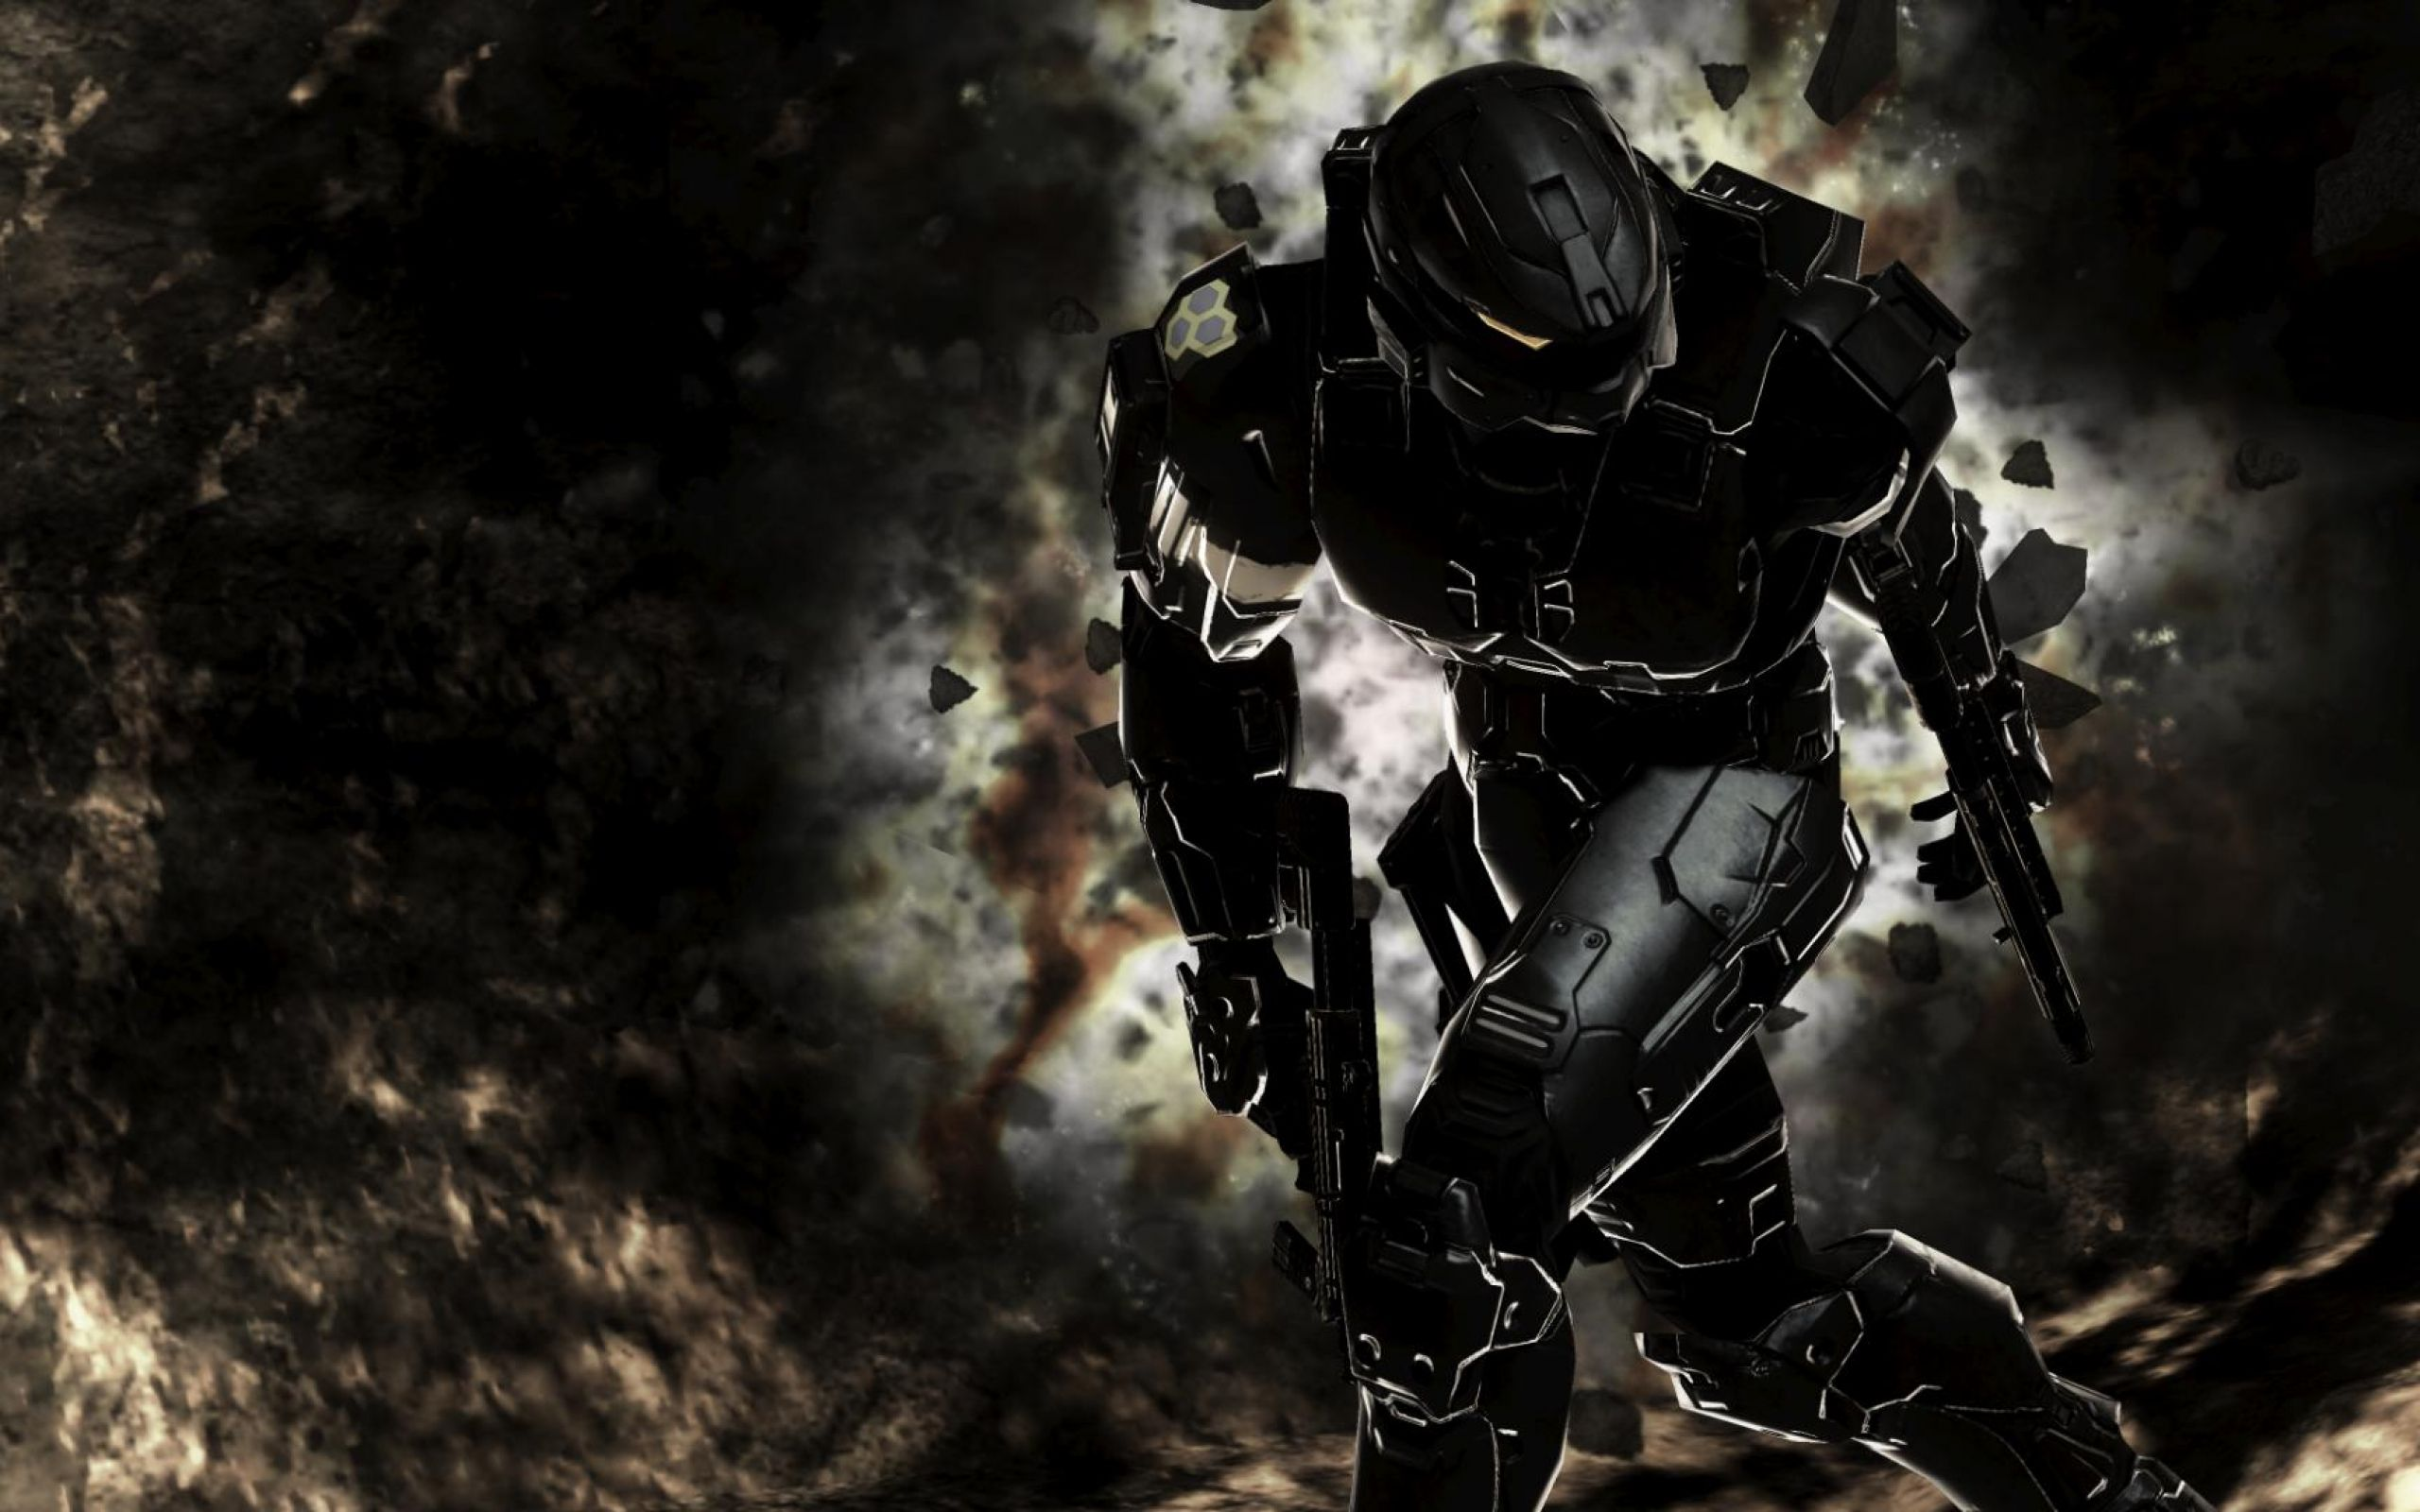 halo 3 the true video game wallpaper hd widescreen | stuff to buy